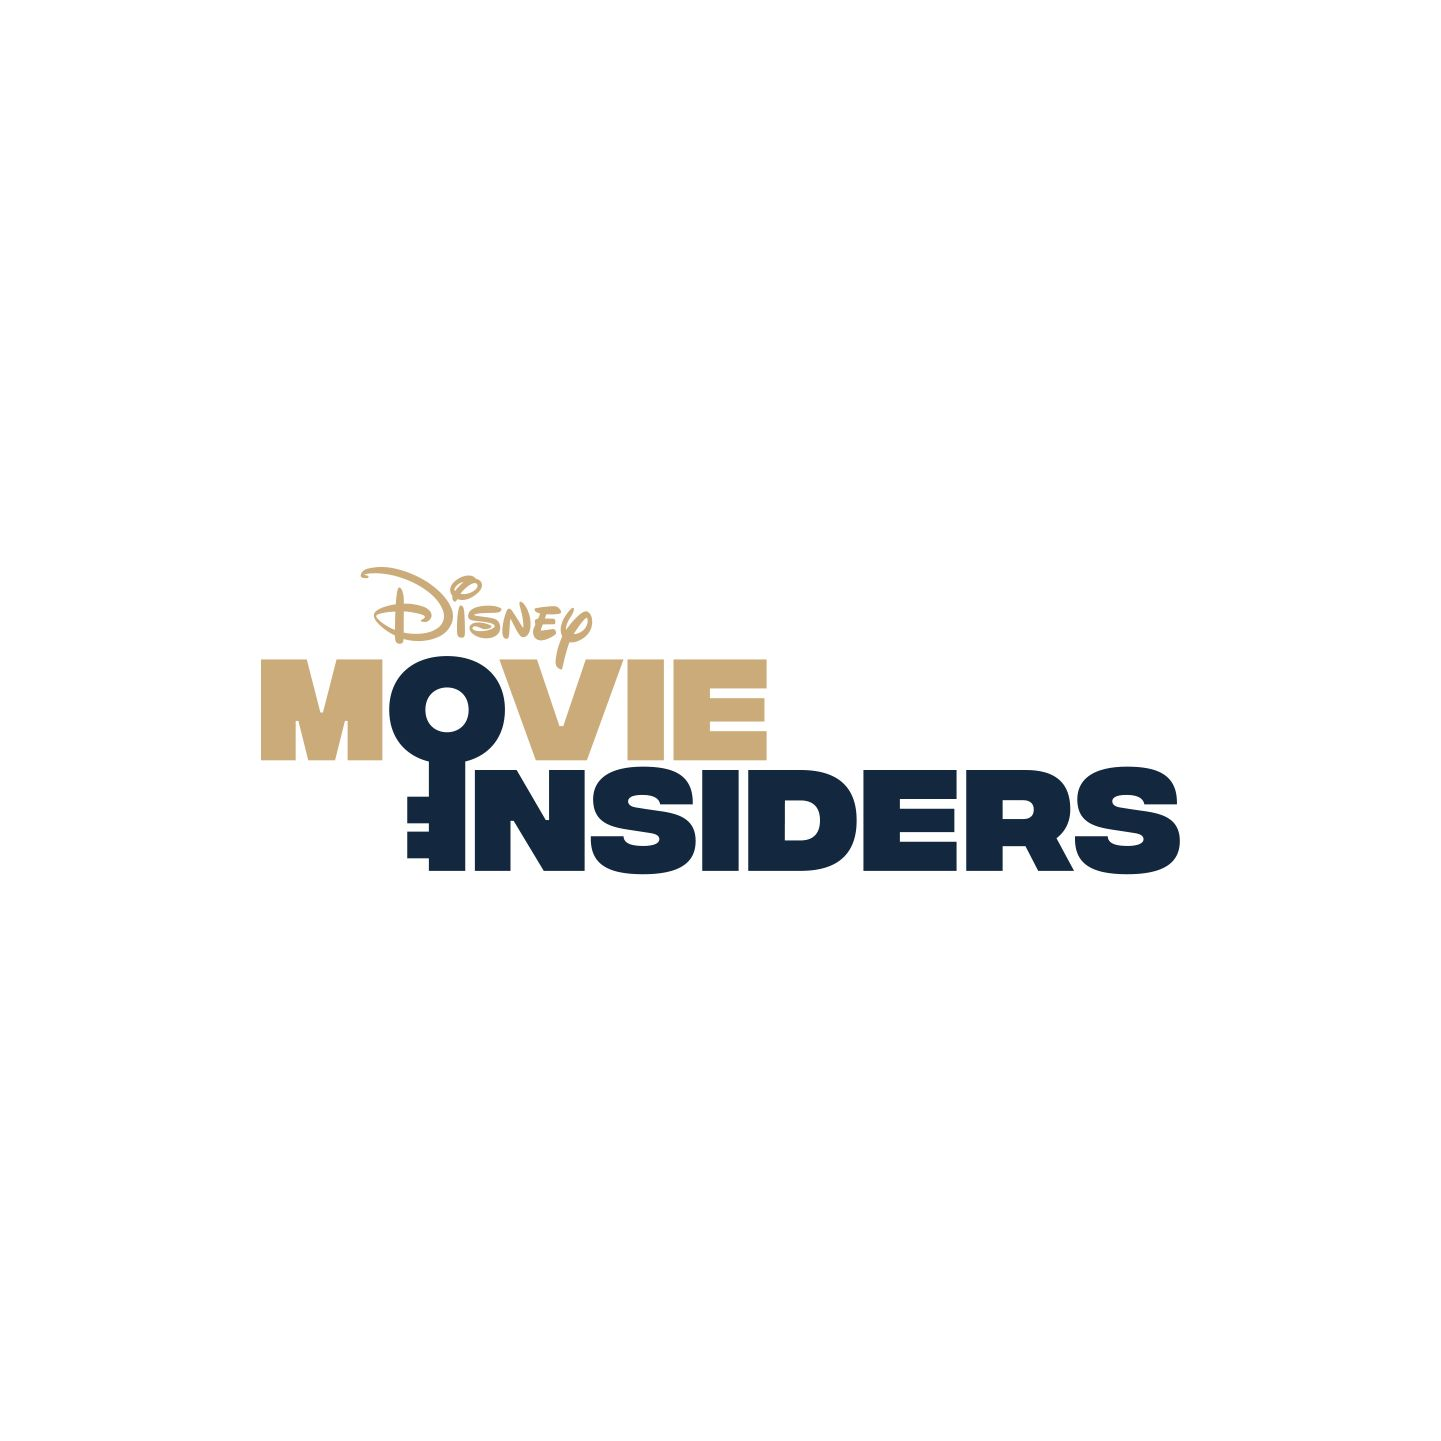 Disney Movie Insiders Celebrates Black History Month - Join us in celebrating Black stories, trailblazers and more!